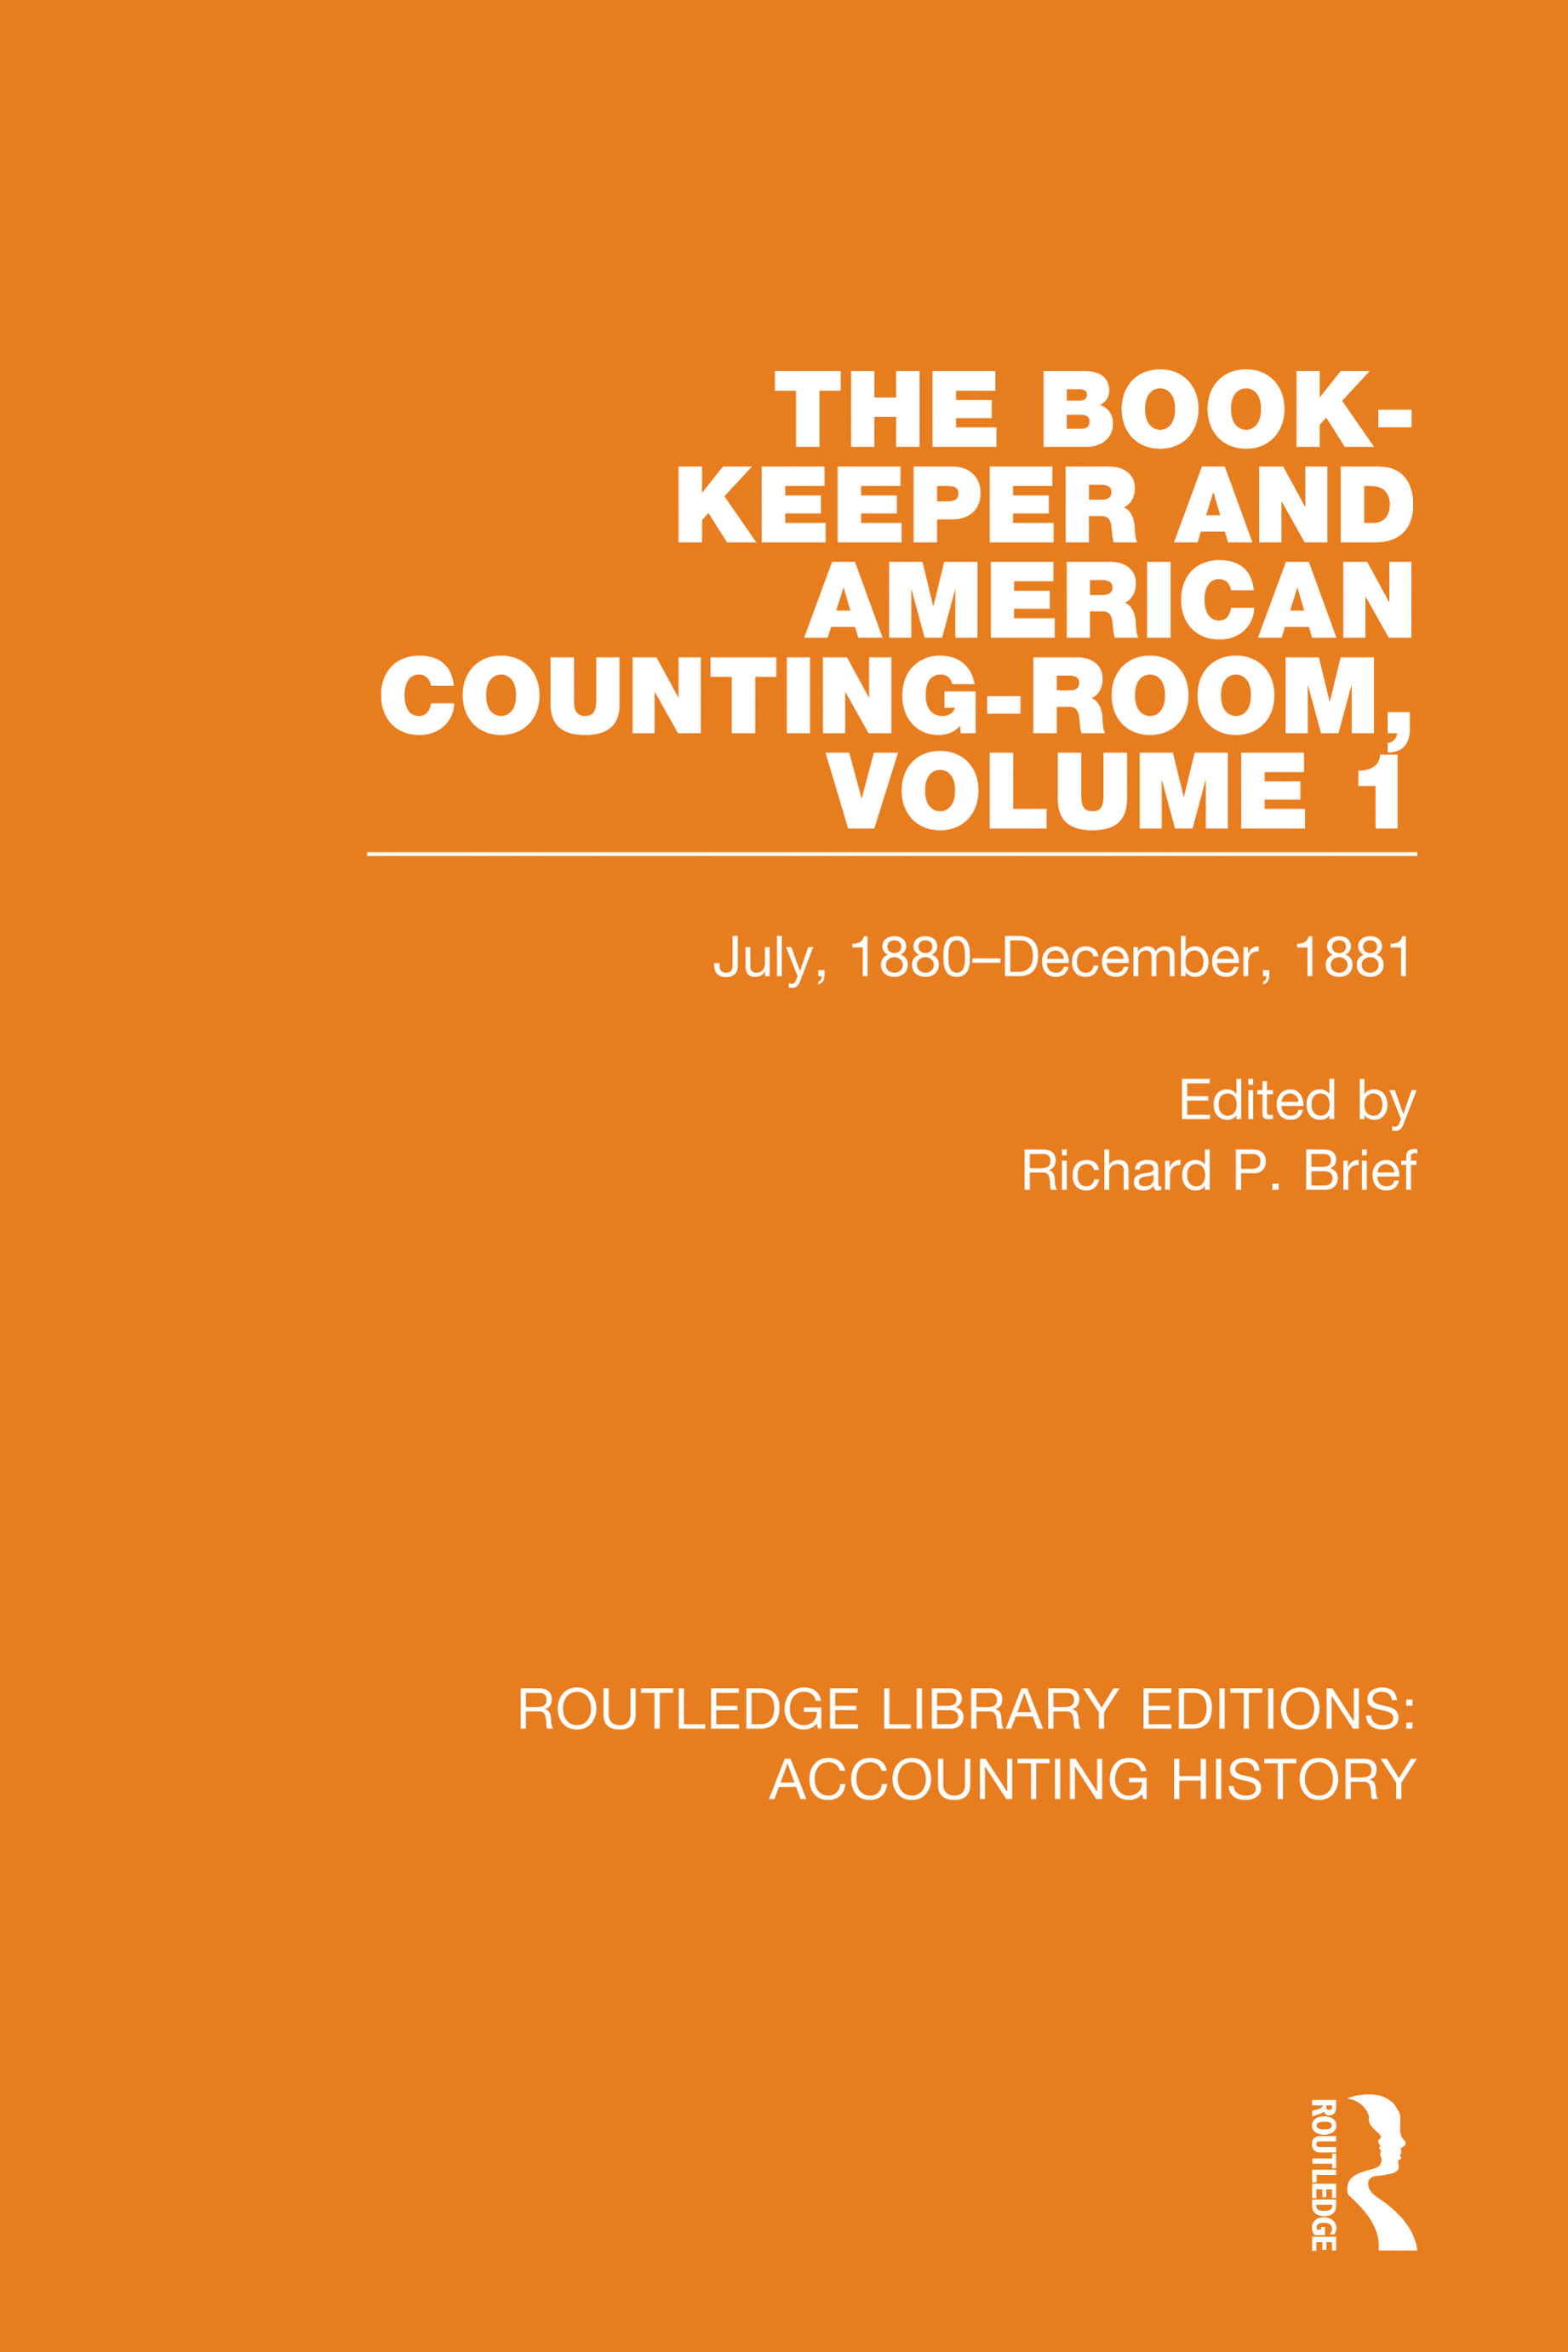 The Book-Keeper and American Counting-Room Volume 1